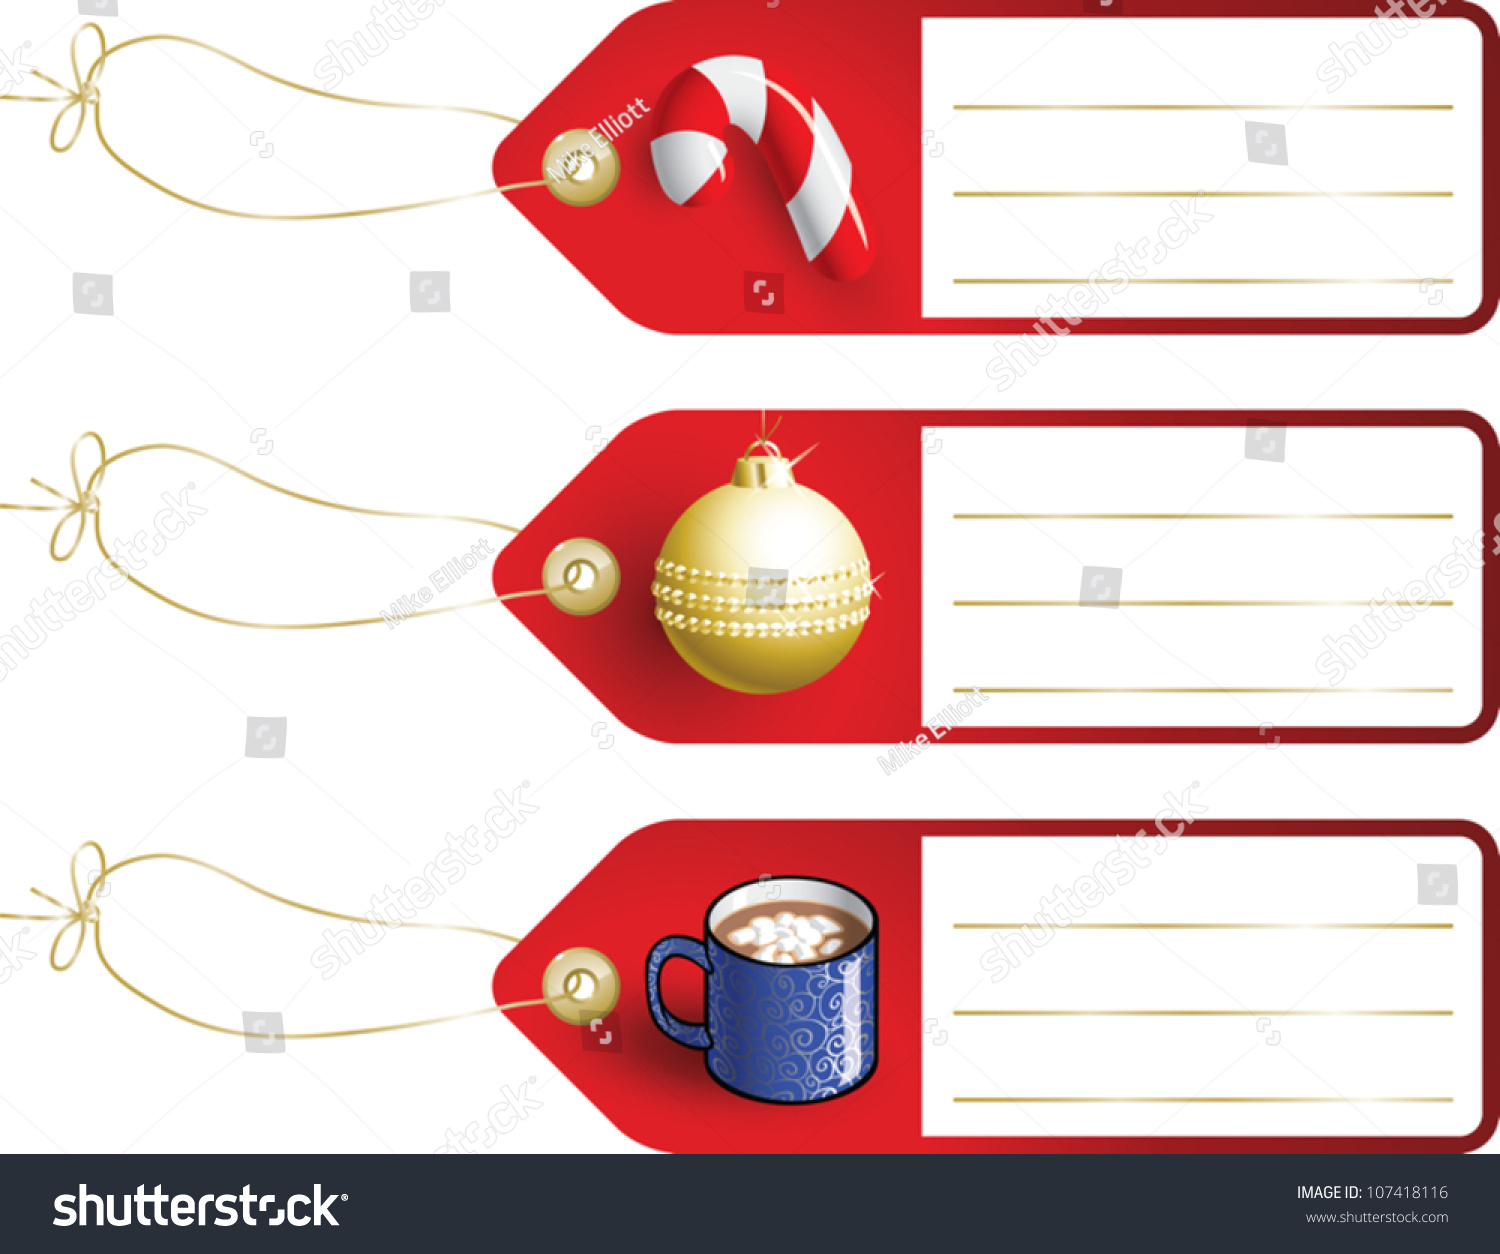 Realistic Cartoon Illustration Of Blank Christmas Gift Tags With ...